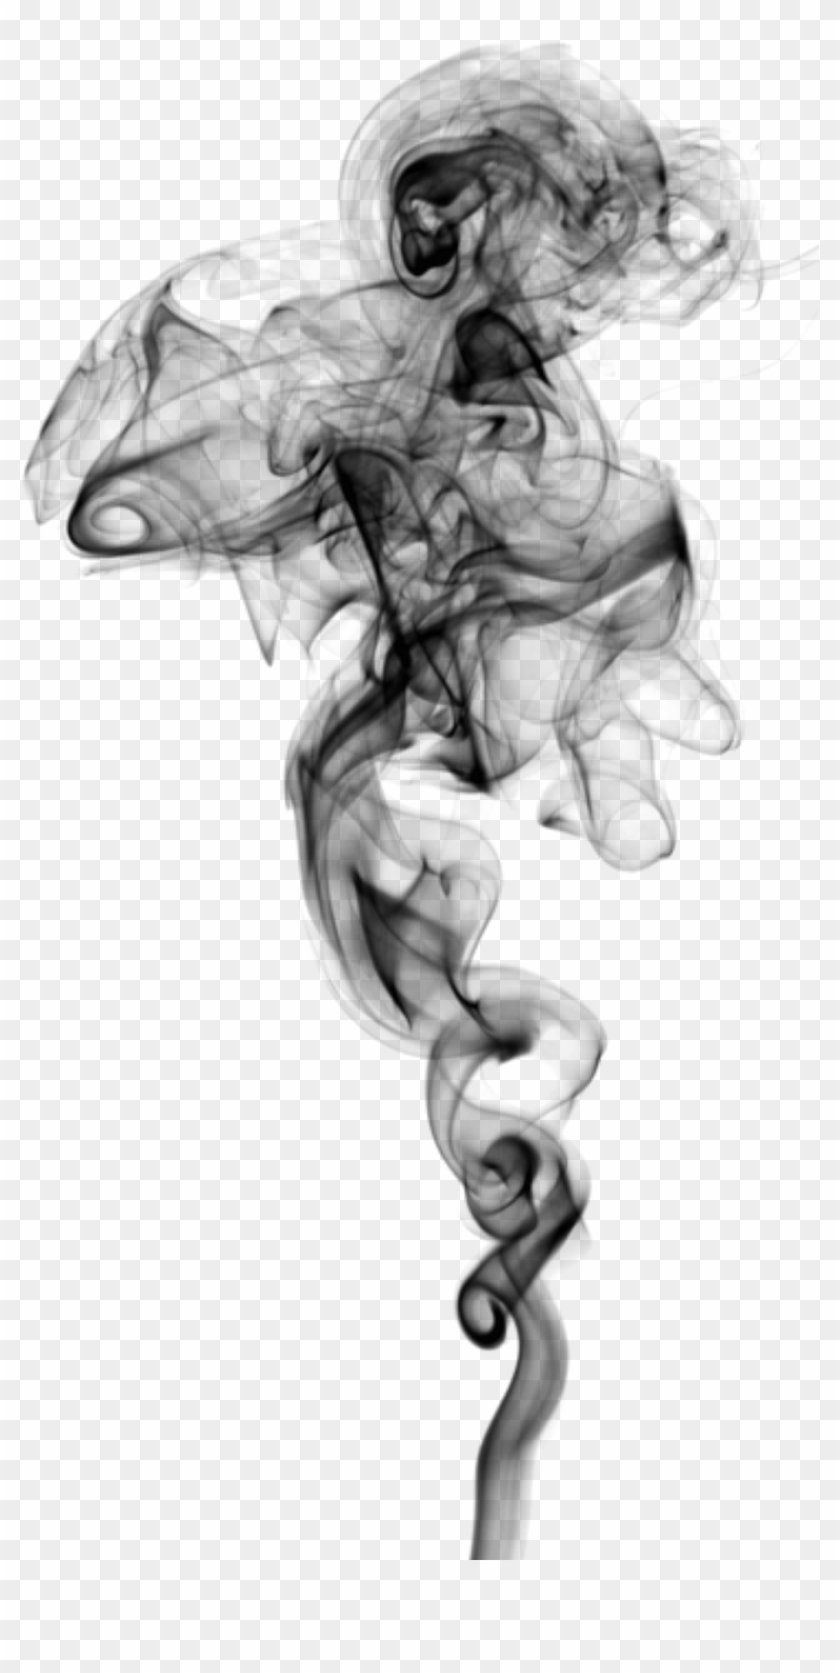 Download Smoke Png Images Background - Smoke Effect Transparent Background Clipart #32073